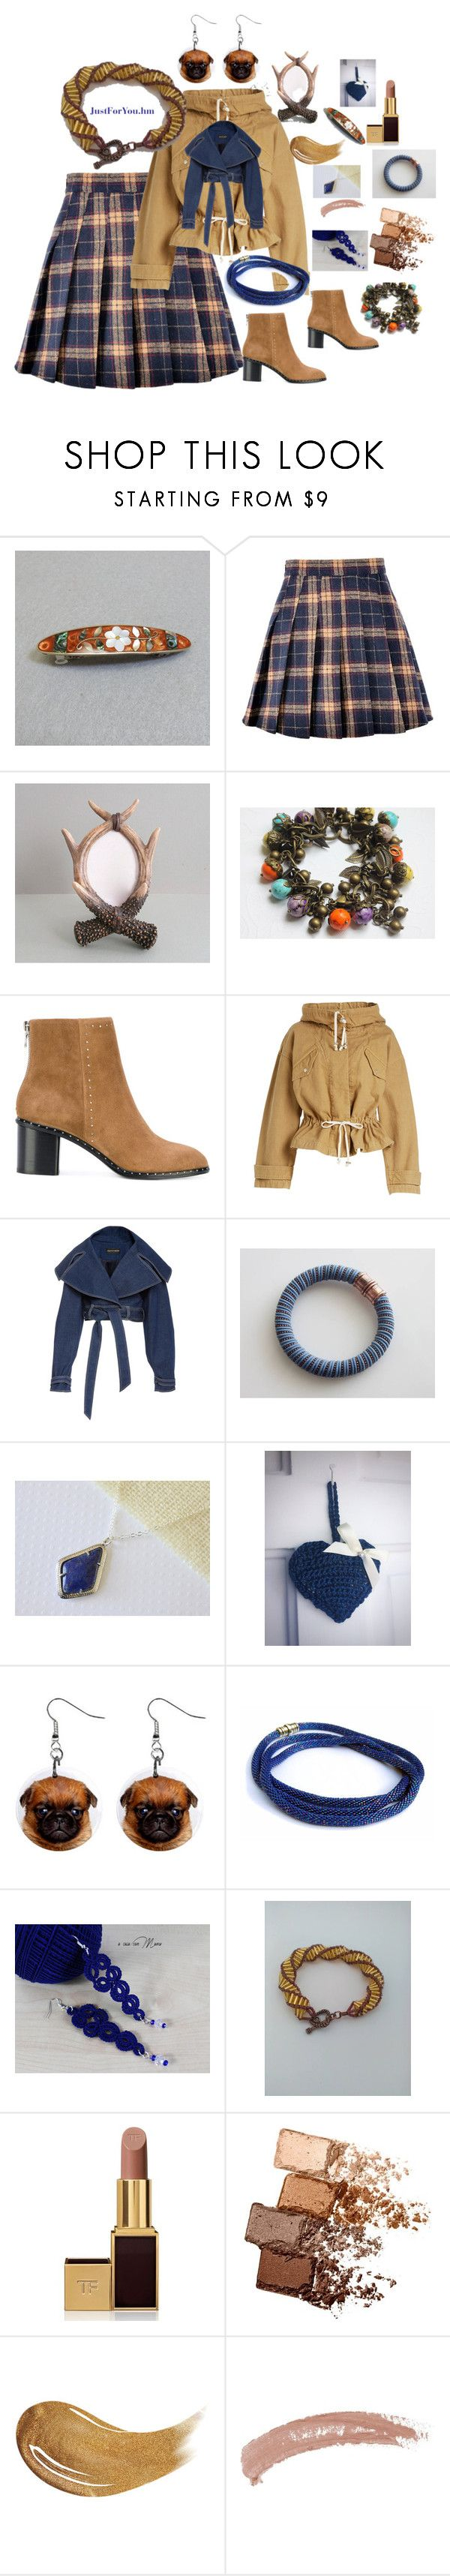 """Gift ideas"" by justforyouhm ❤ liked on Polyvore featuring rag & bone, Étoile Isabel Marant, Cadeau, Tom Ford, Maybelline, Too Faced Cosmetics and Topshop"